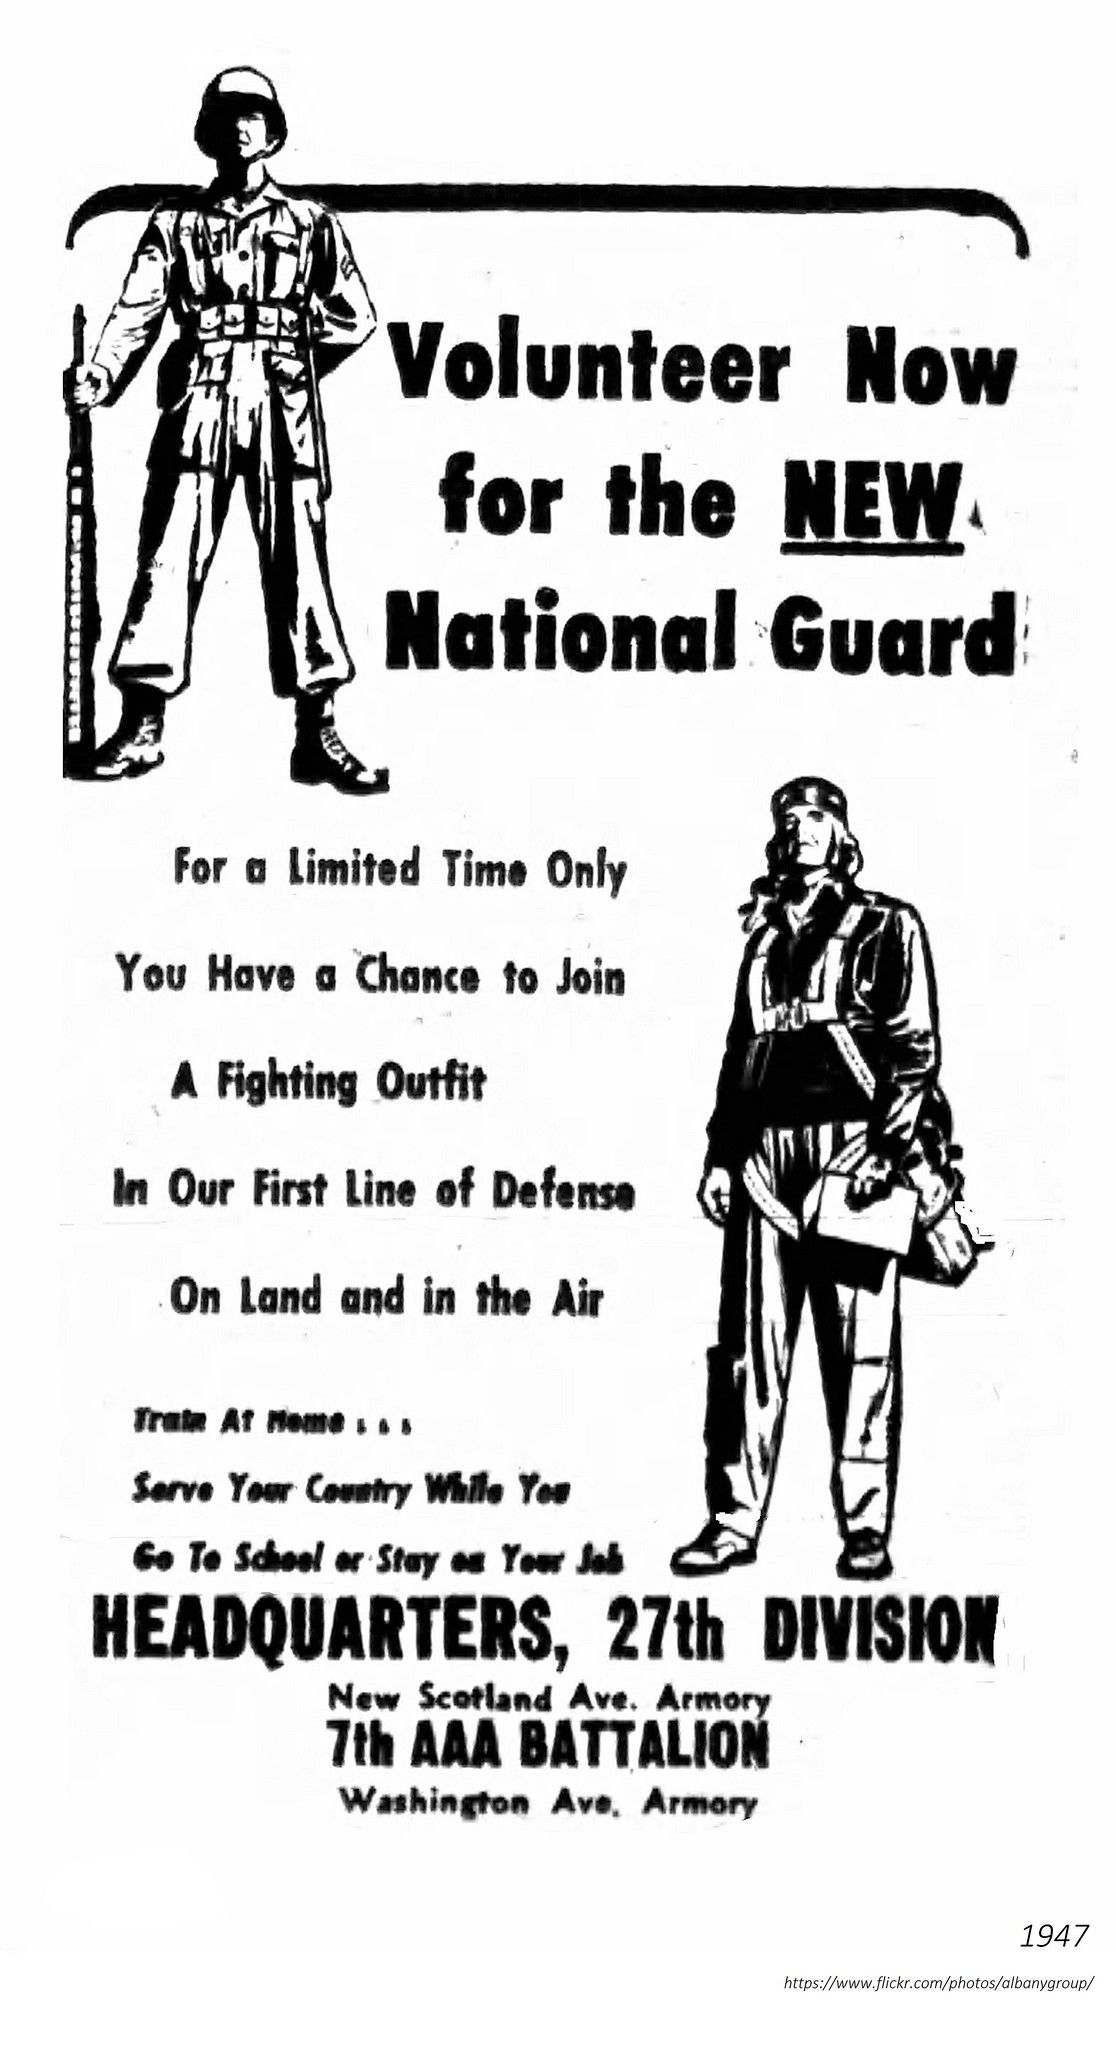 1947 National Guard recruitment ad. (With images